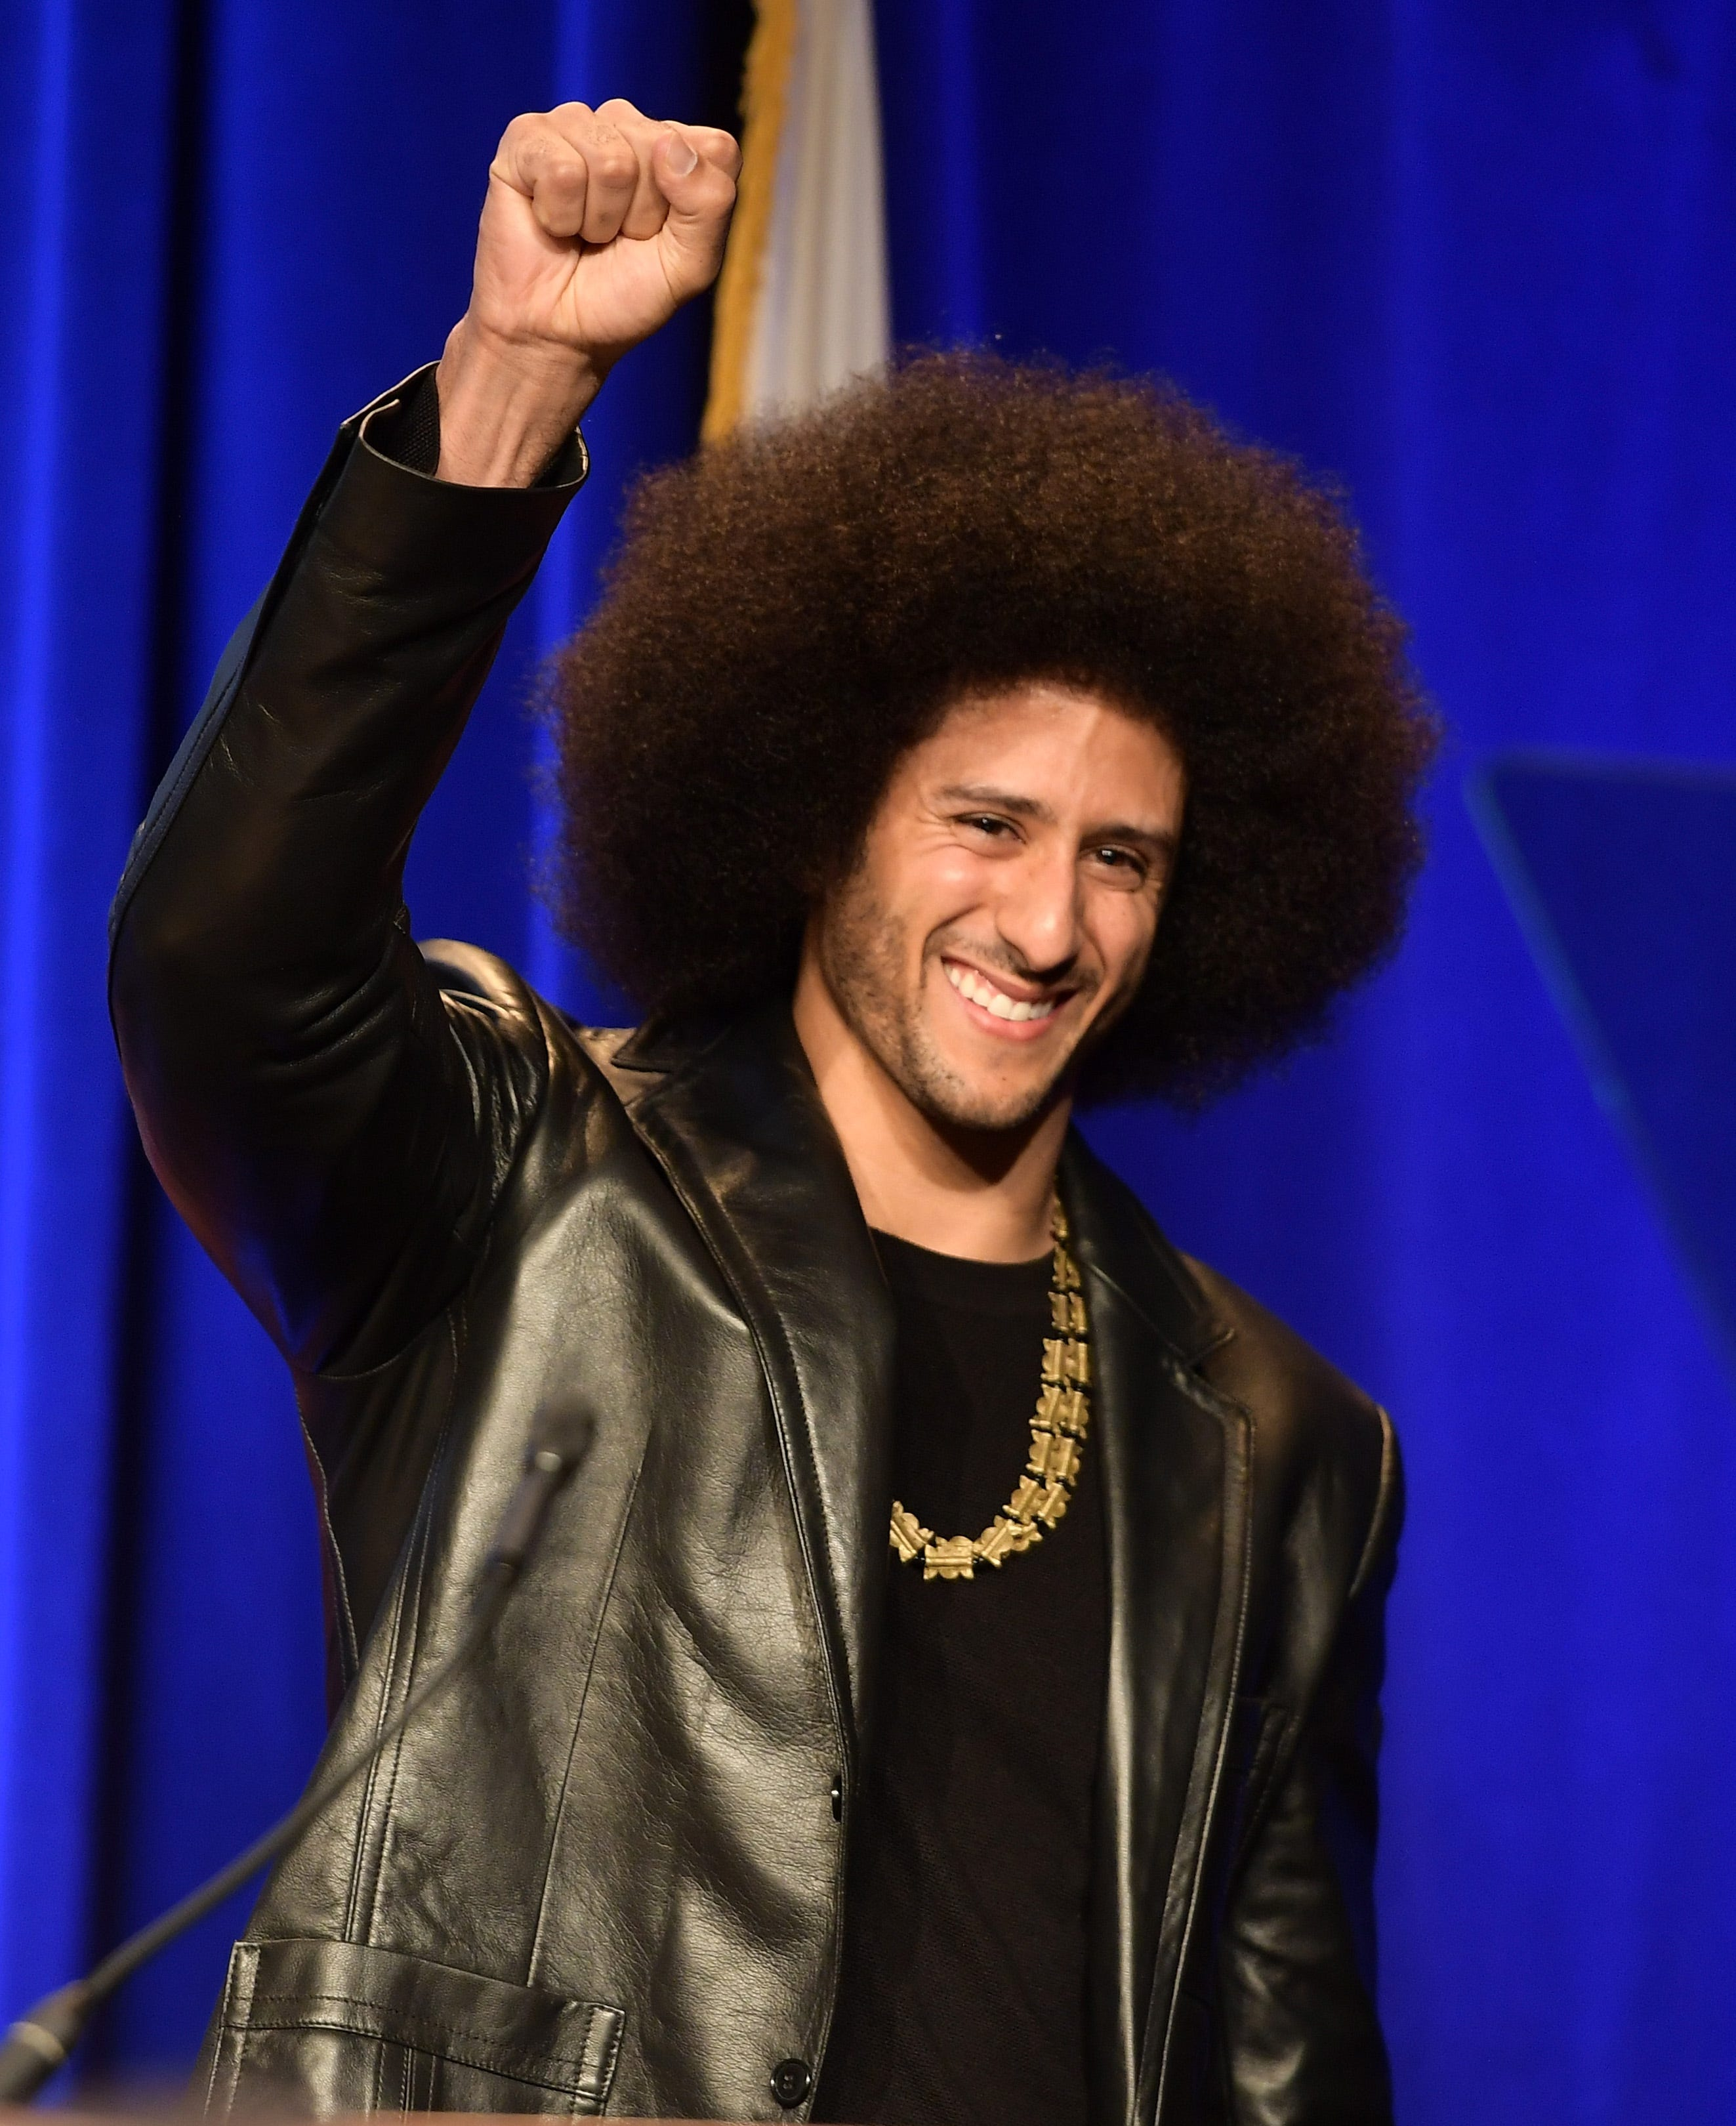 Colin Kaepernick's new 'Just Do it' Nike ad puts pressure on NFL to take a stand